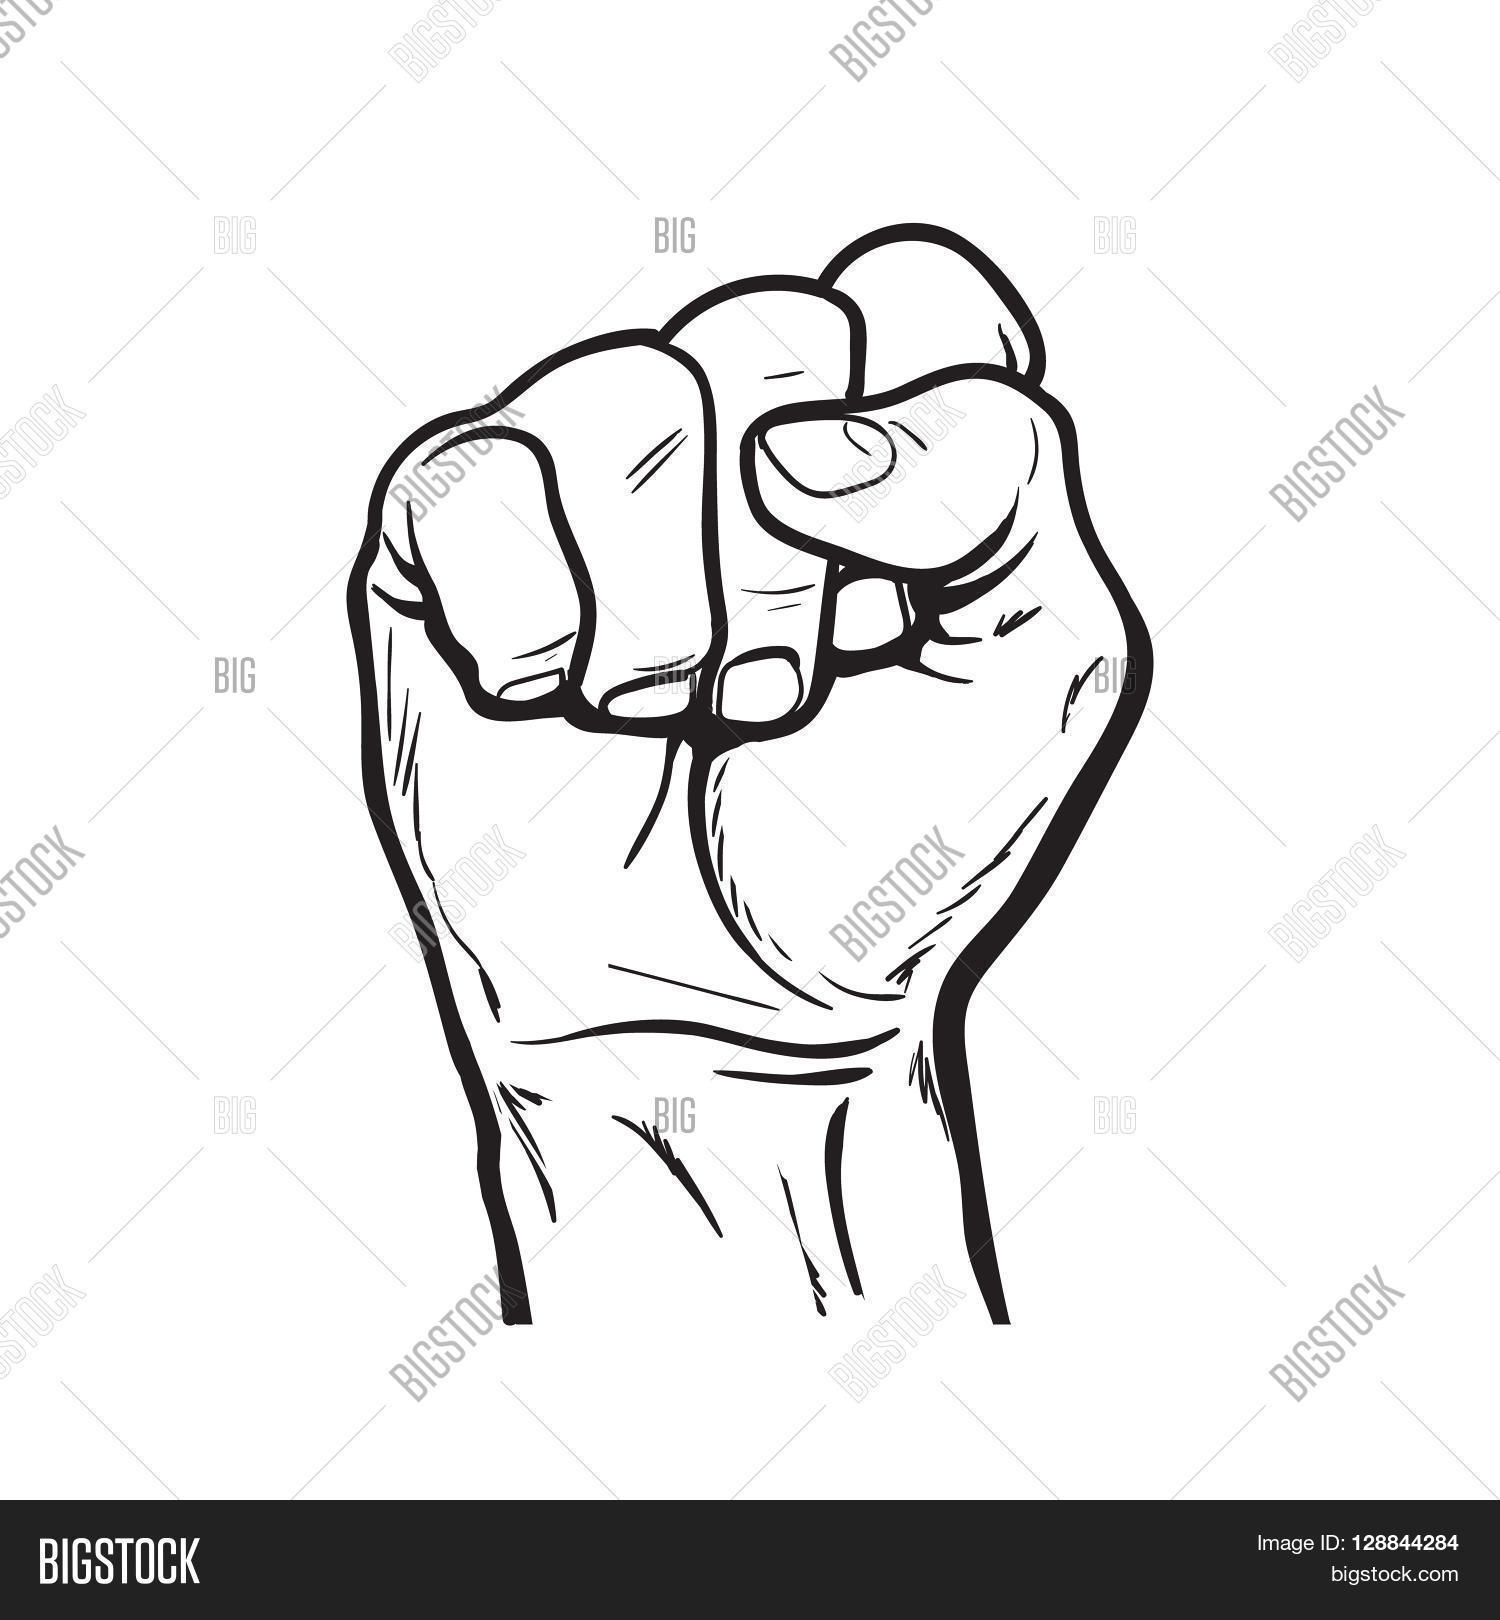 1500x1620 Clenched Fist. Hand Clenched Fist. Image Amp Photo Bigstock